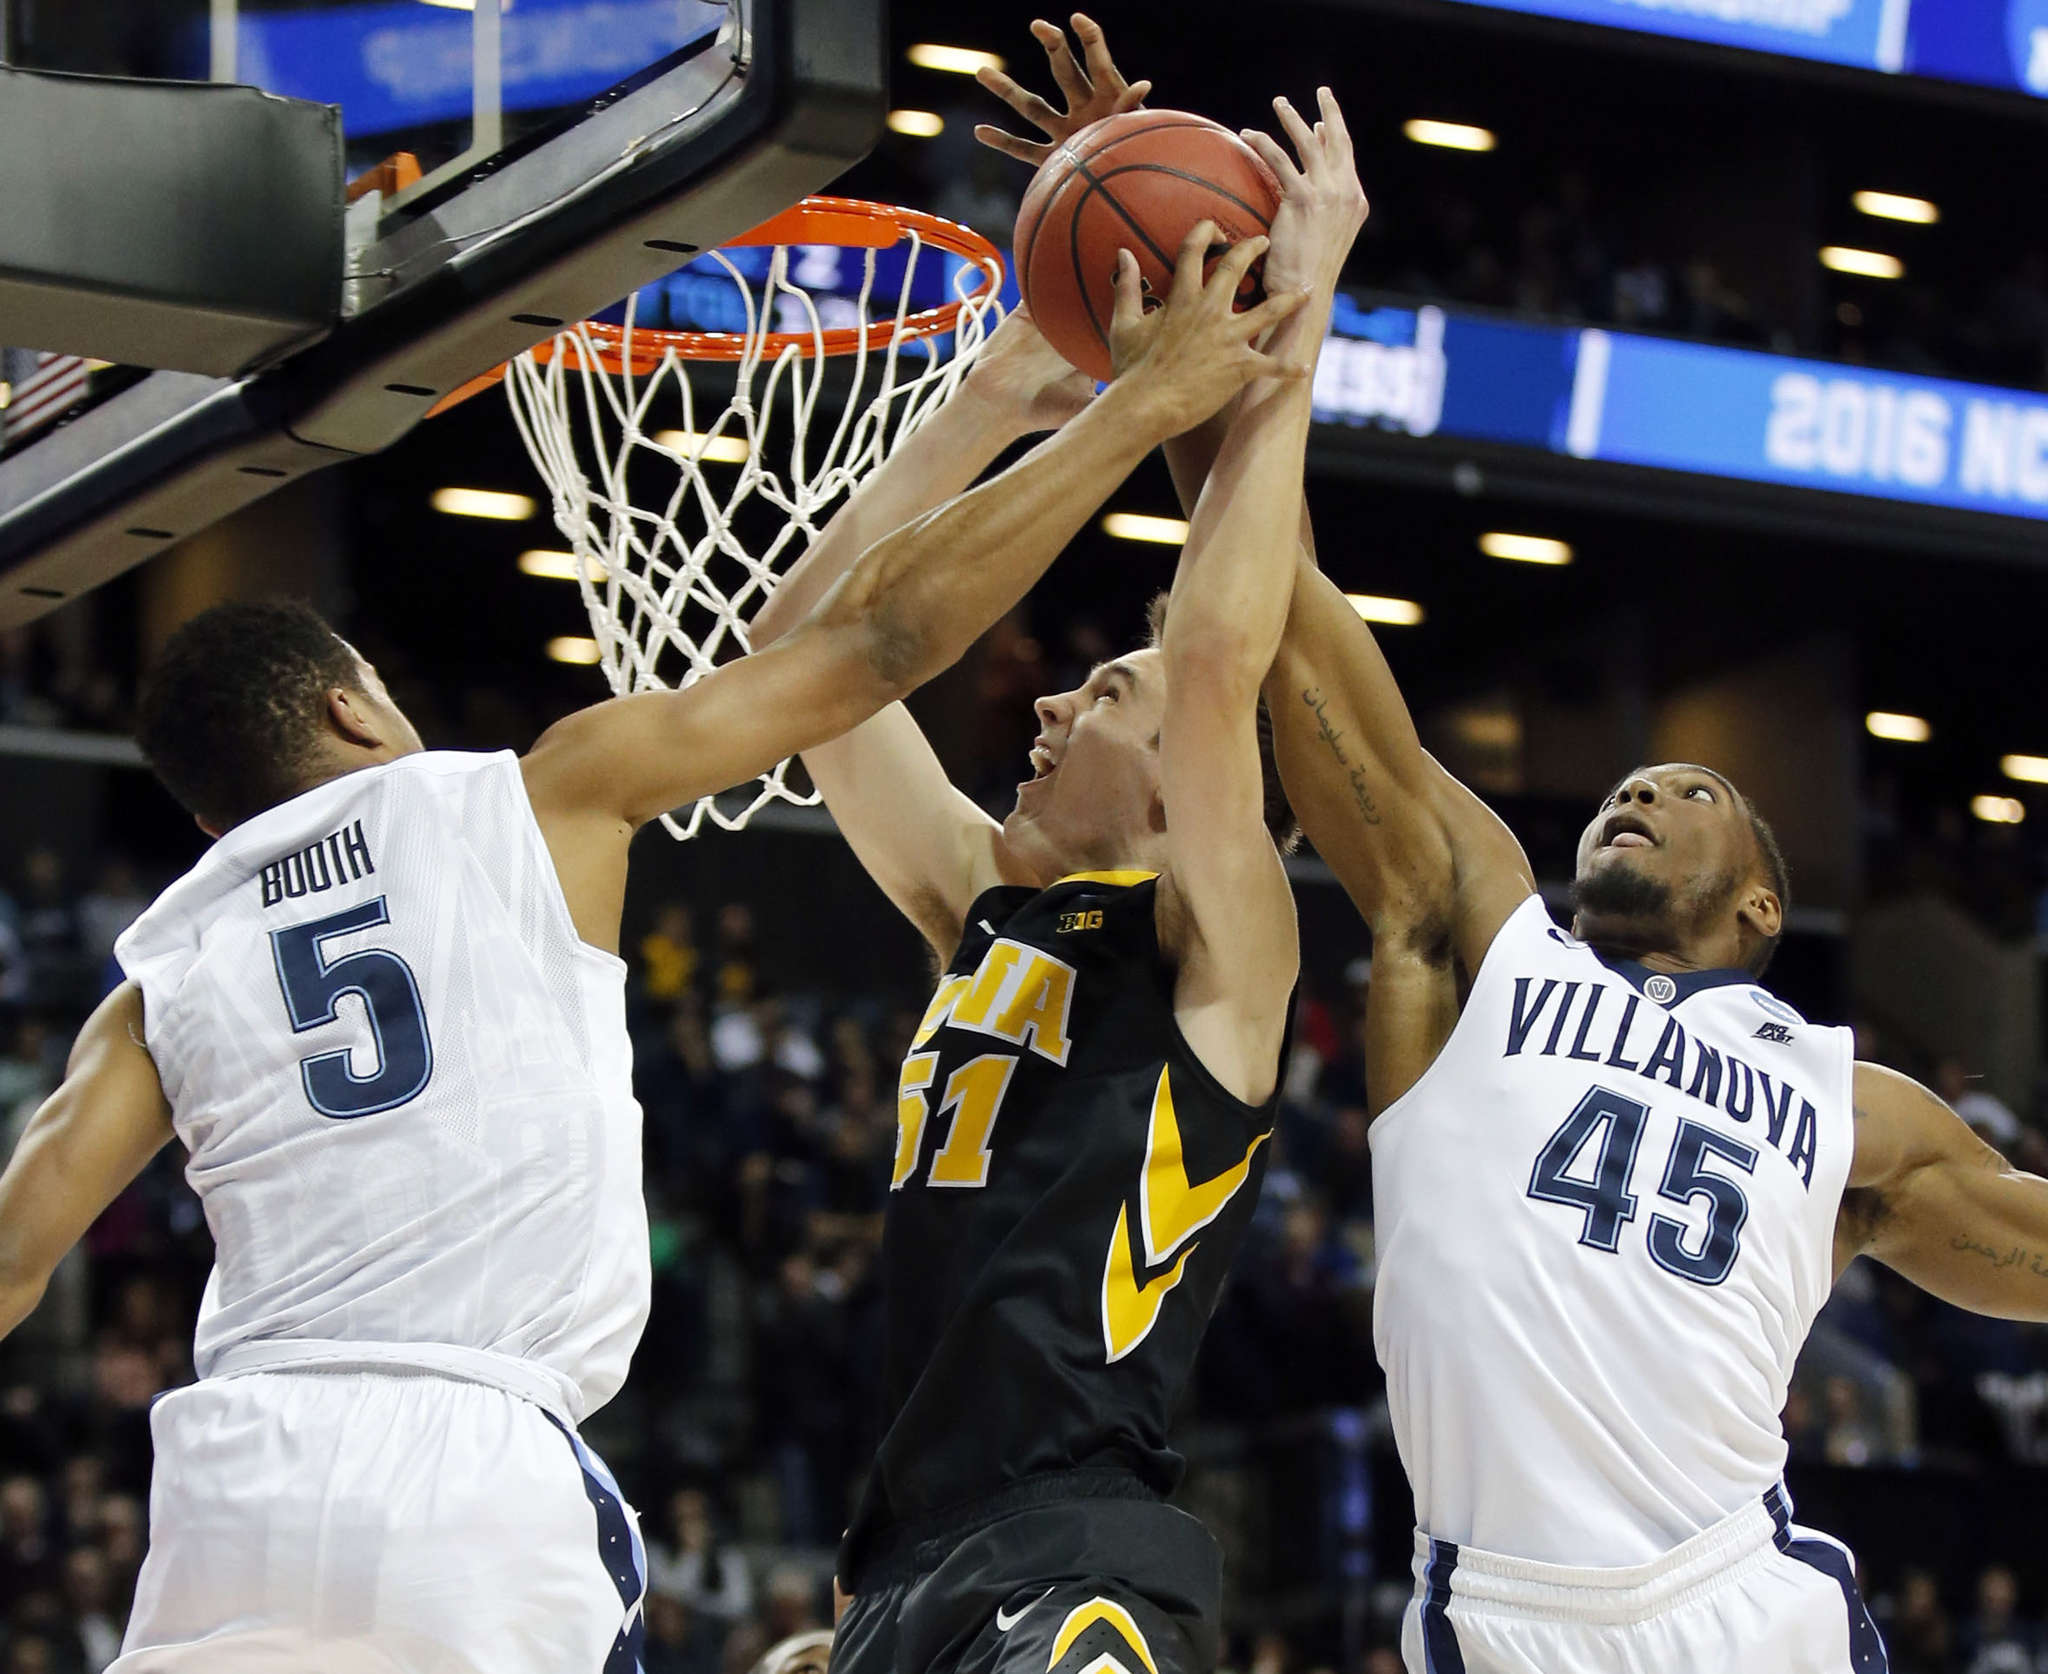 Villanova´s Phil Booth (left) and Darryl Reynolds sandwich Iowa´s Nicholas Baer in the first half.